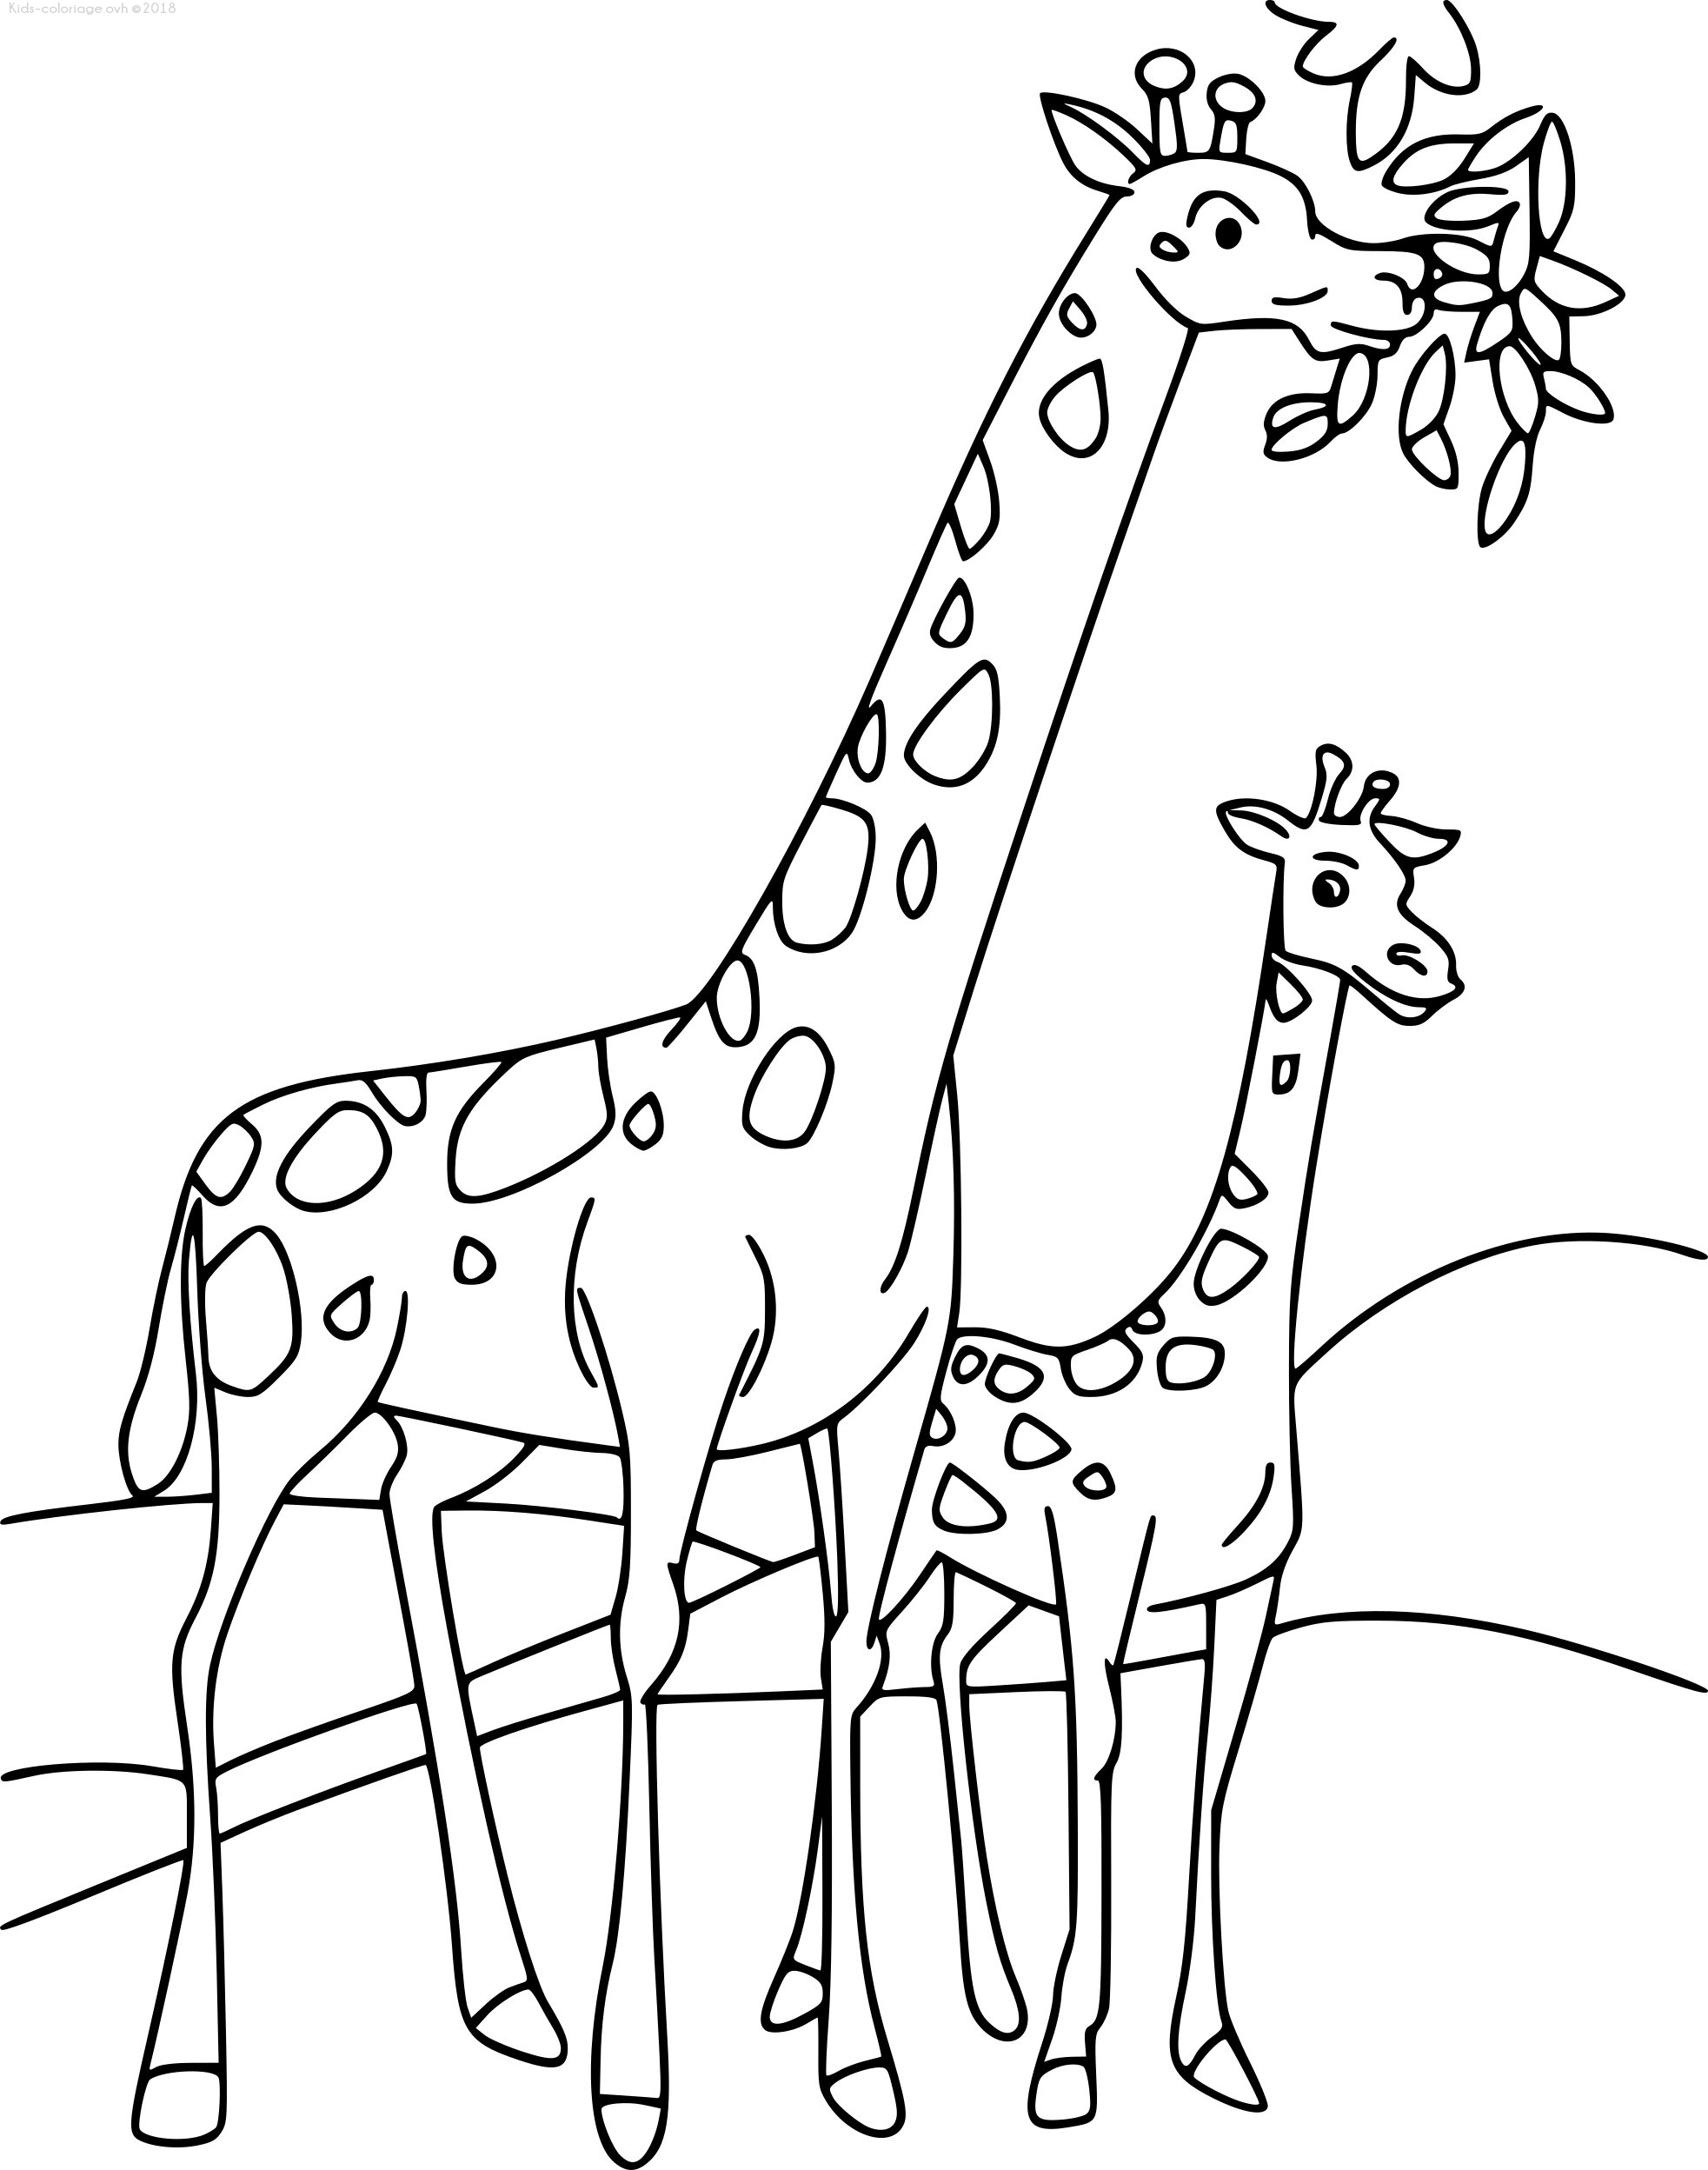 Coloriage Voiture Girafe.Coloriages A Imprimer Girafe Numero Ff23f4c8